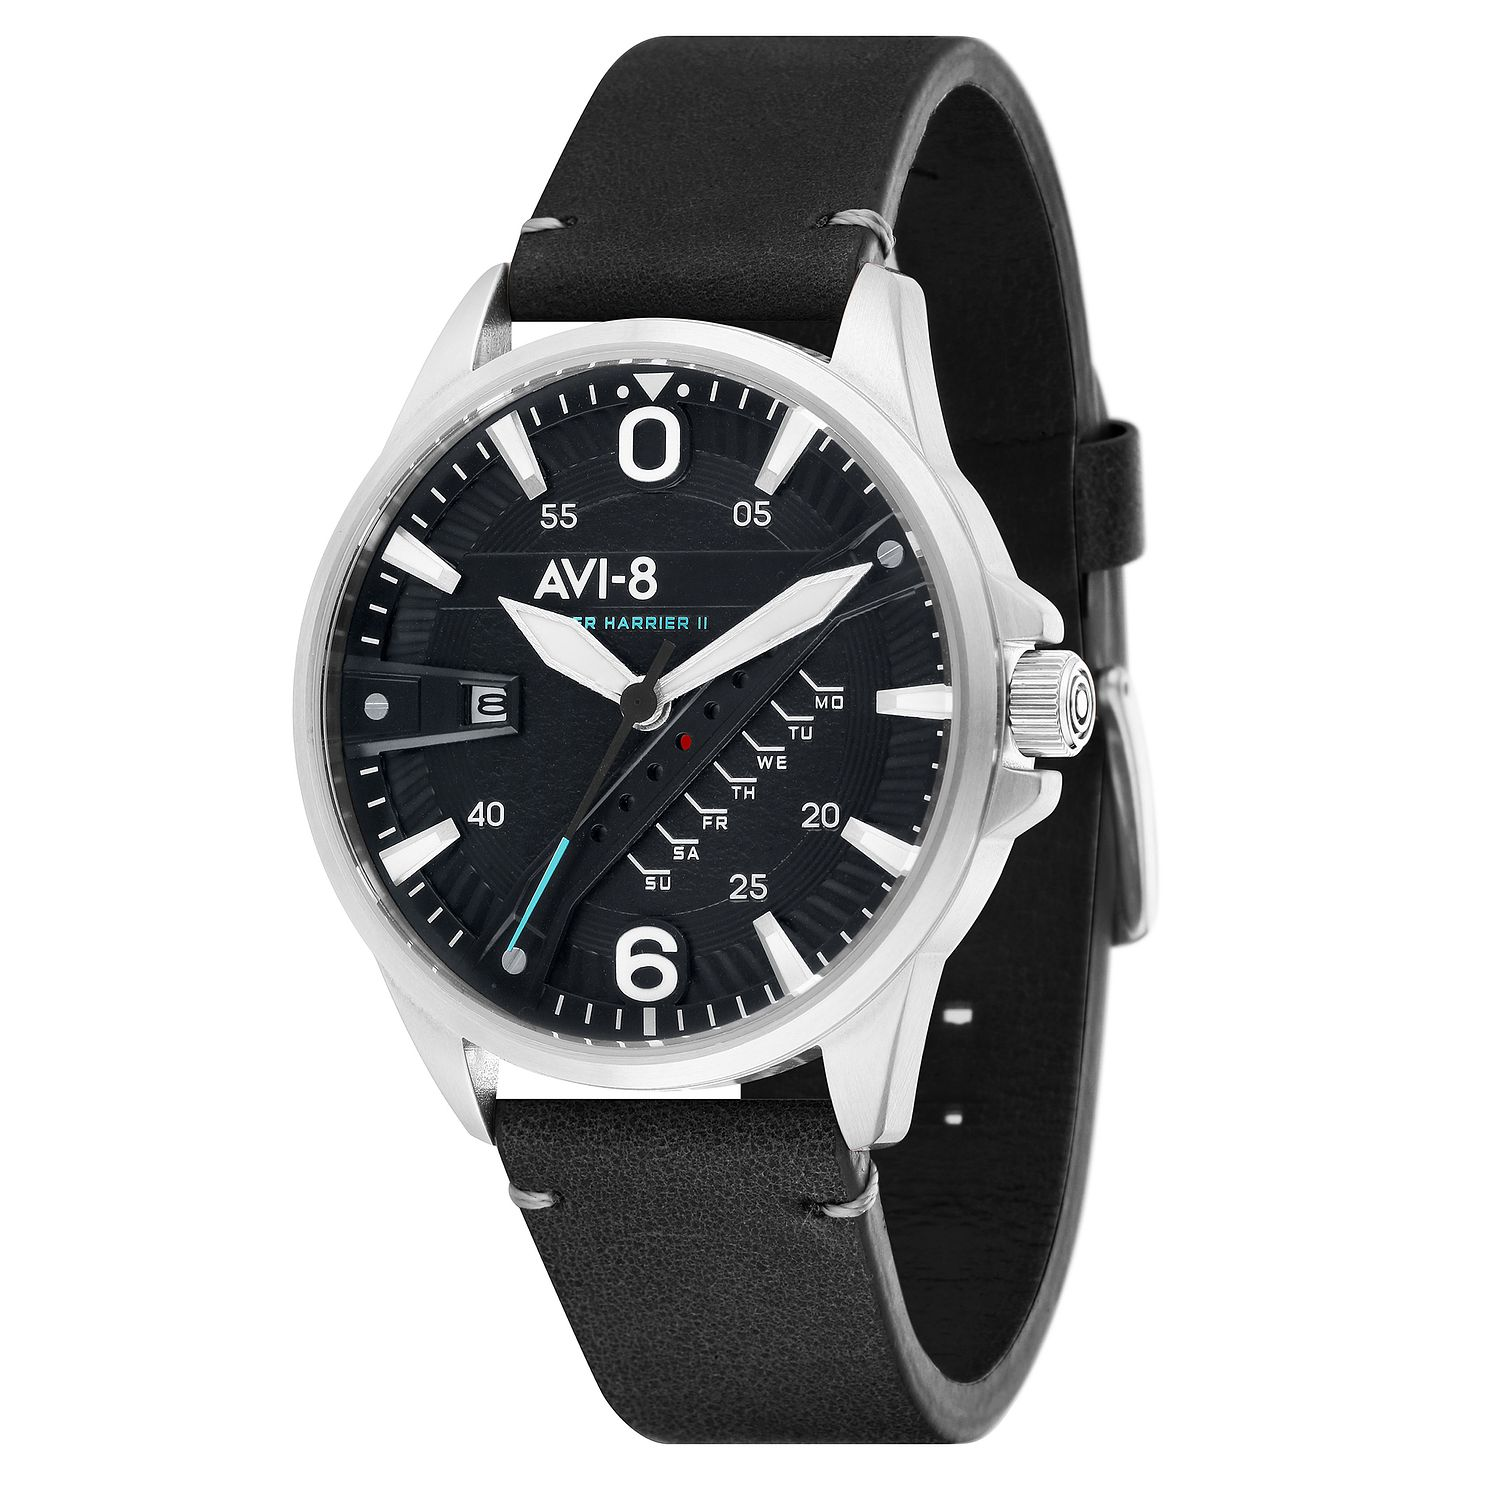 AVI-8 Men's Hawker Harrier II Black Leather Strap Watch - Product number 8901961